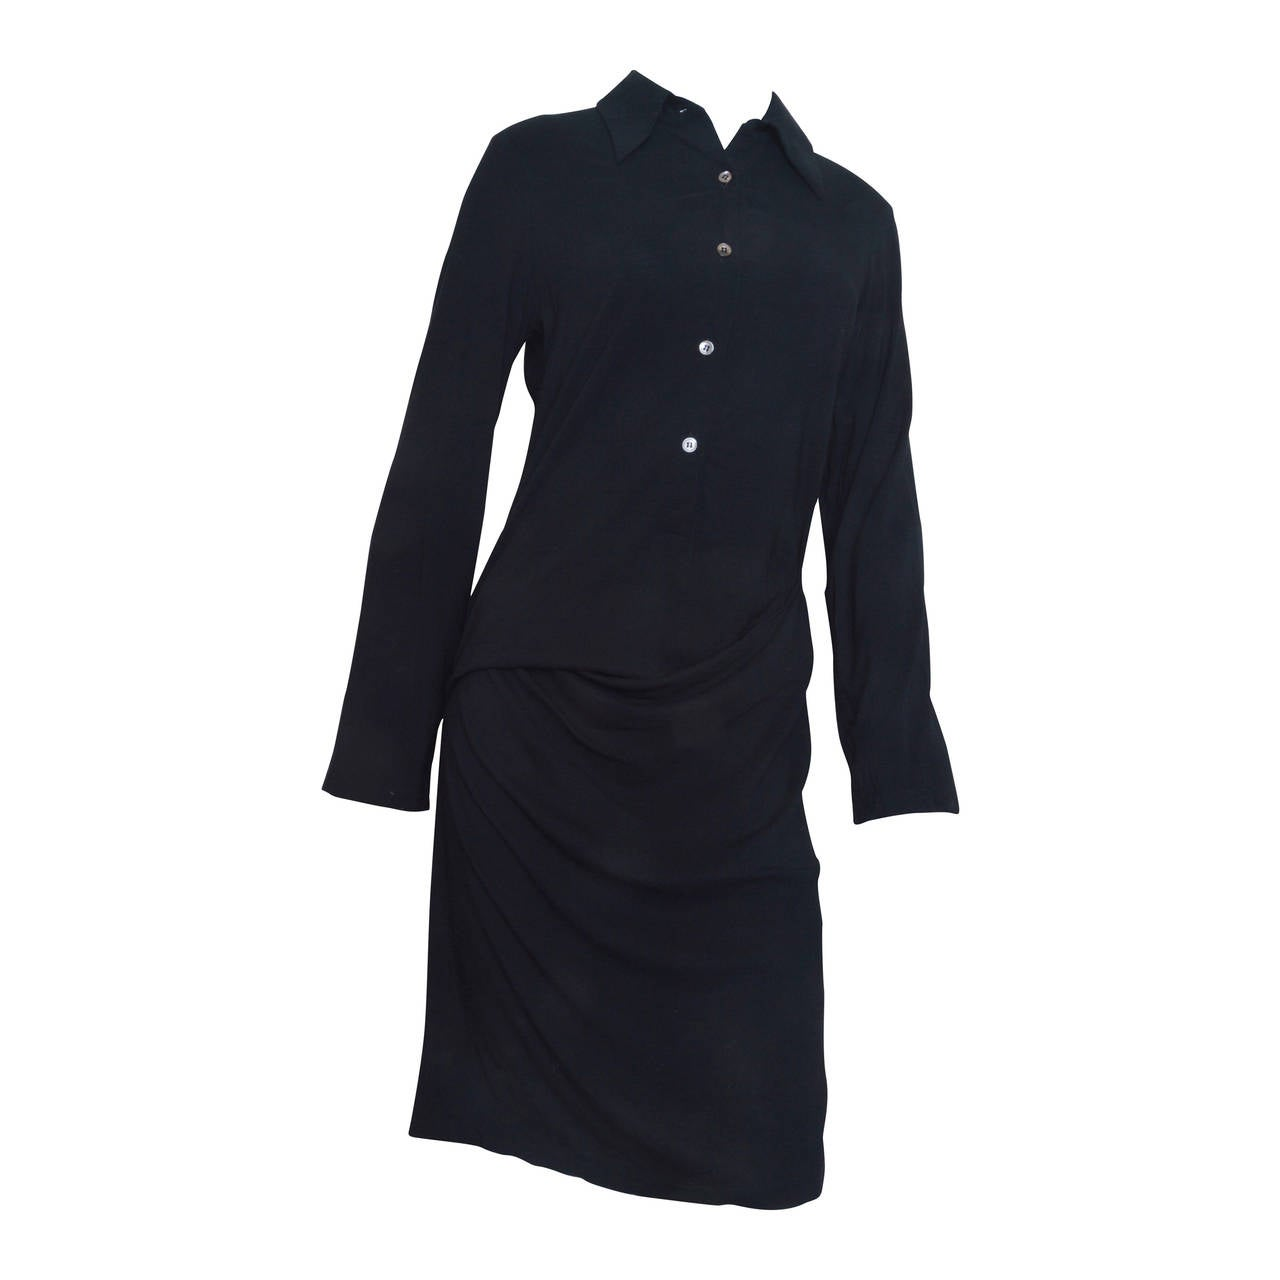 Ann Demeulemeester Asymmetrical Black Shirt Dress